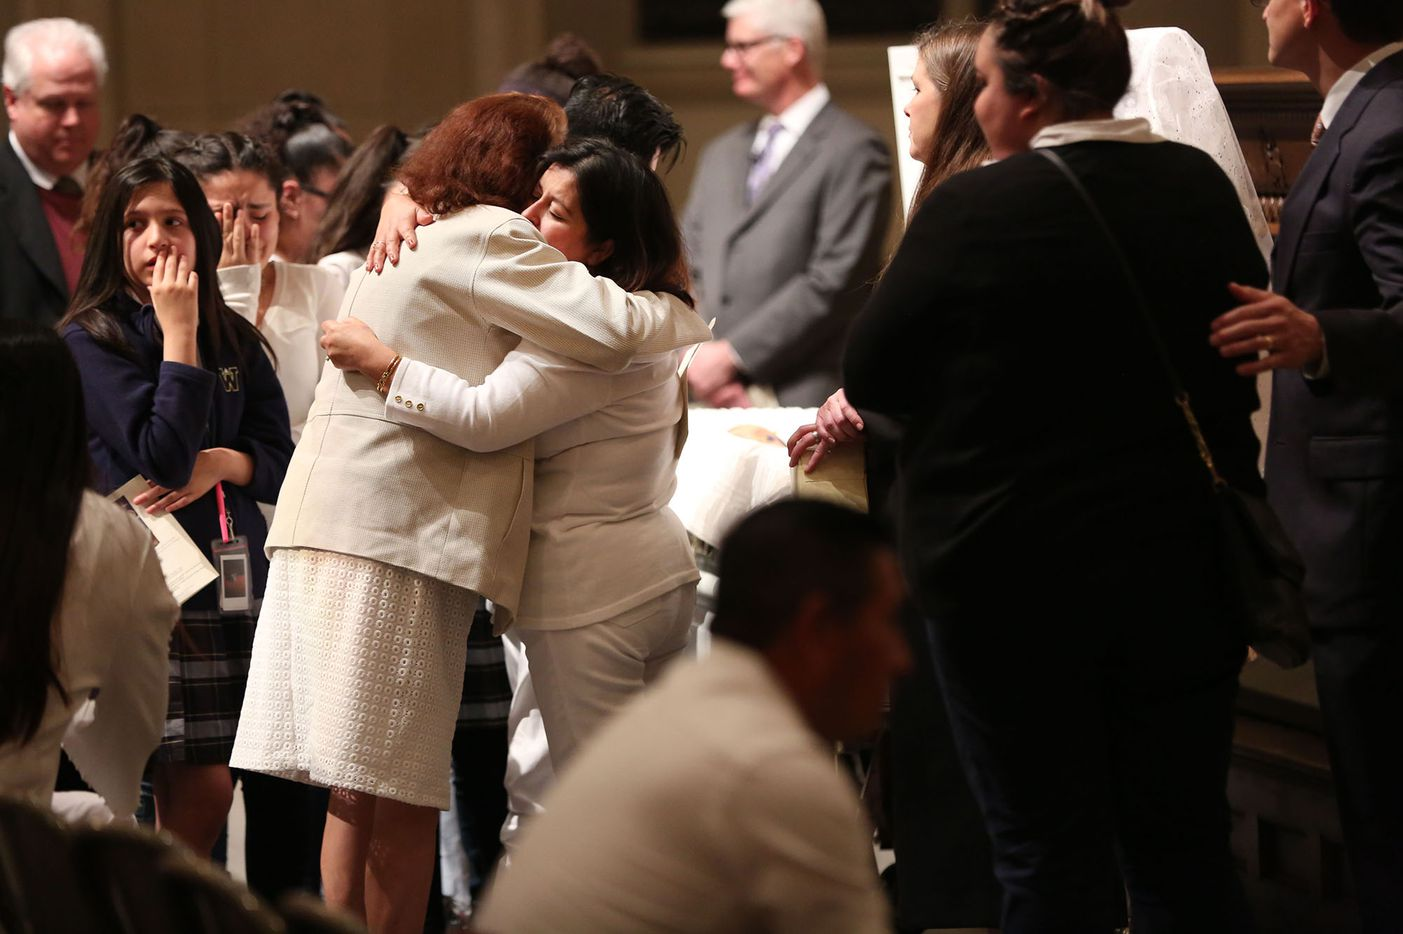 A woman hugs Maria Rogers (right), mother of deceased 12-year-old Linda Rogers, during a memorial service and viewing at Park Cities Presbyterian Church in Dallas on Thursday, March 1, 2018.